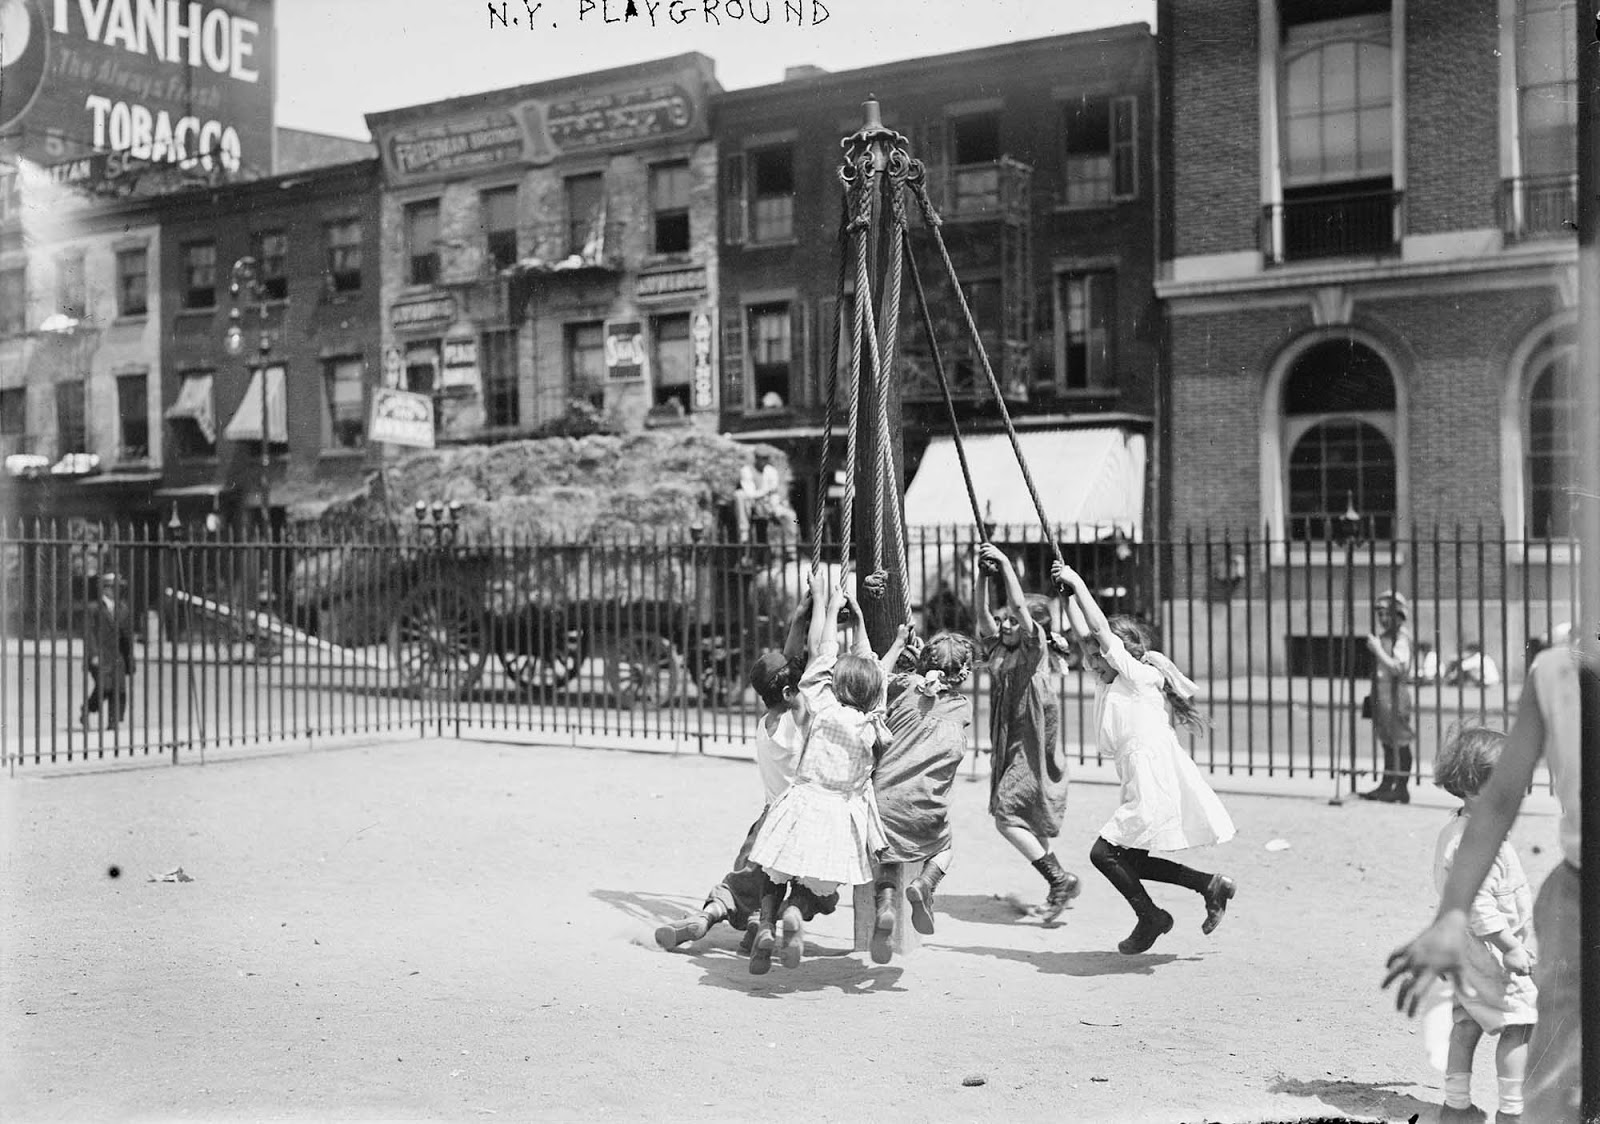 Playground in New York. 1910-1915.